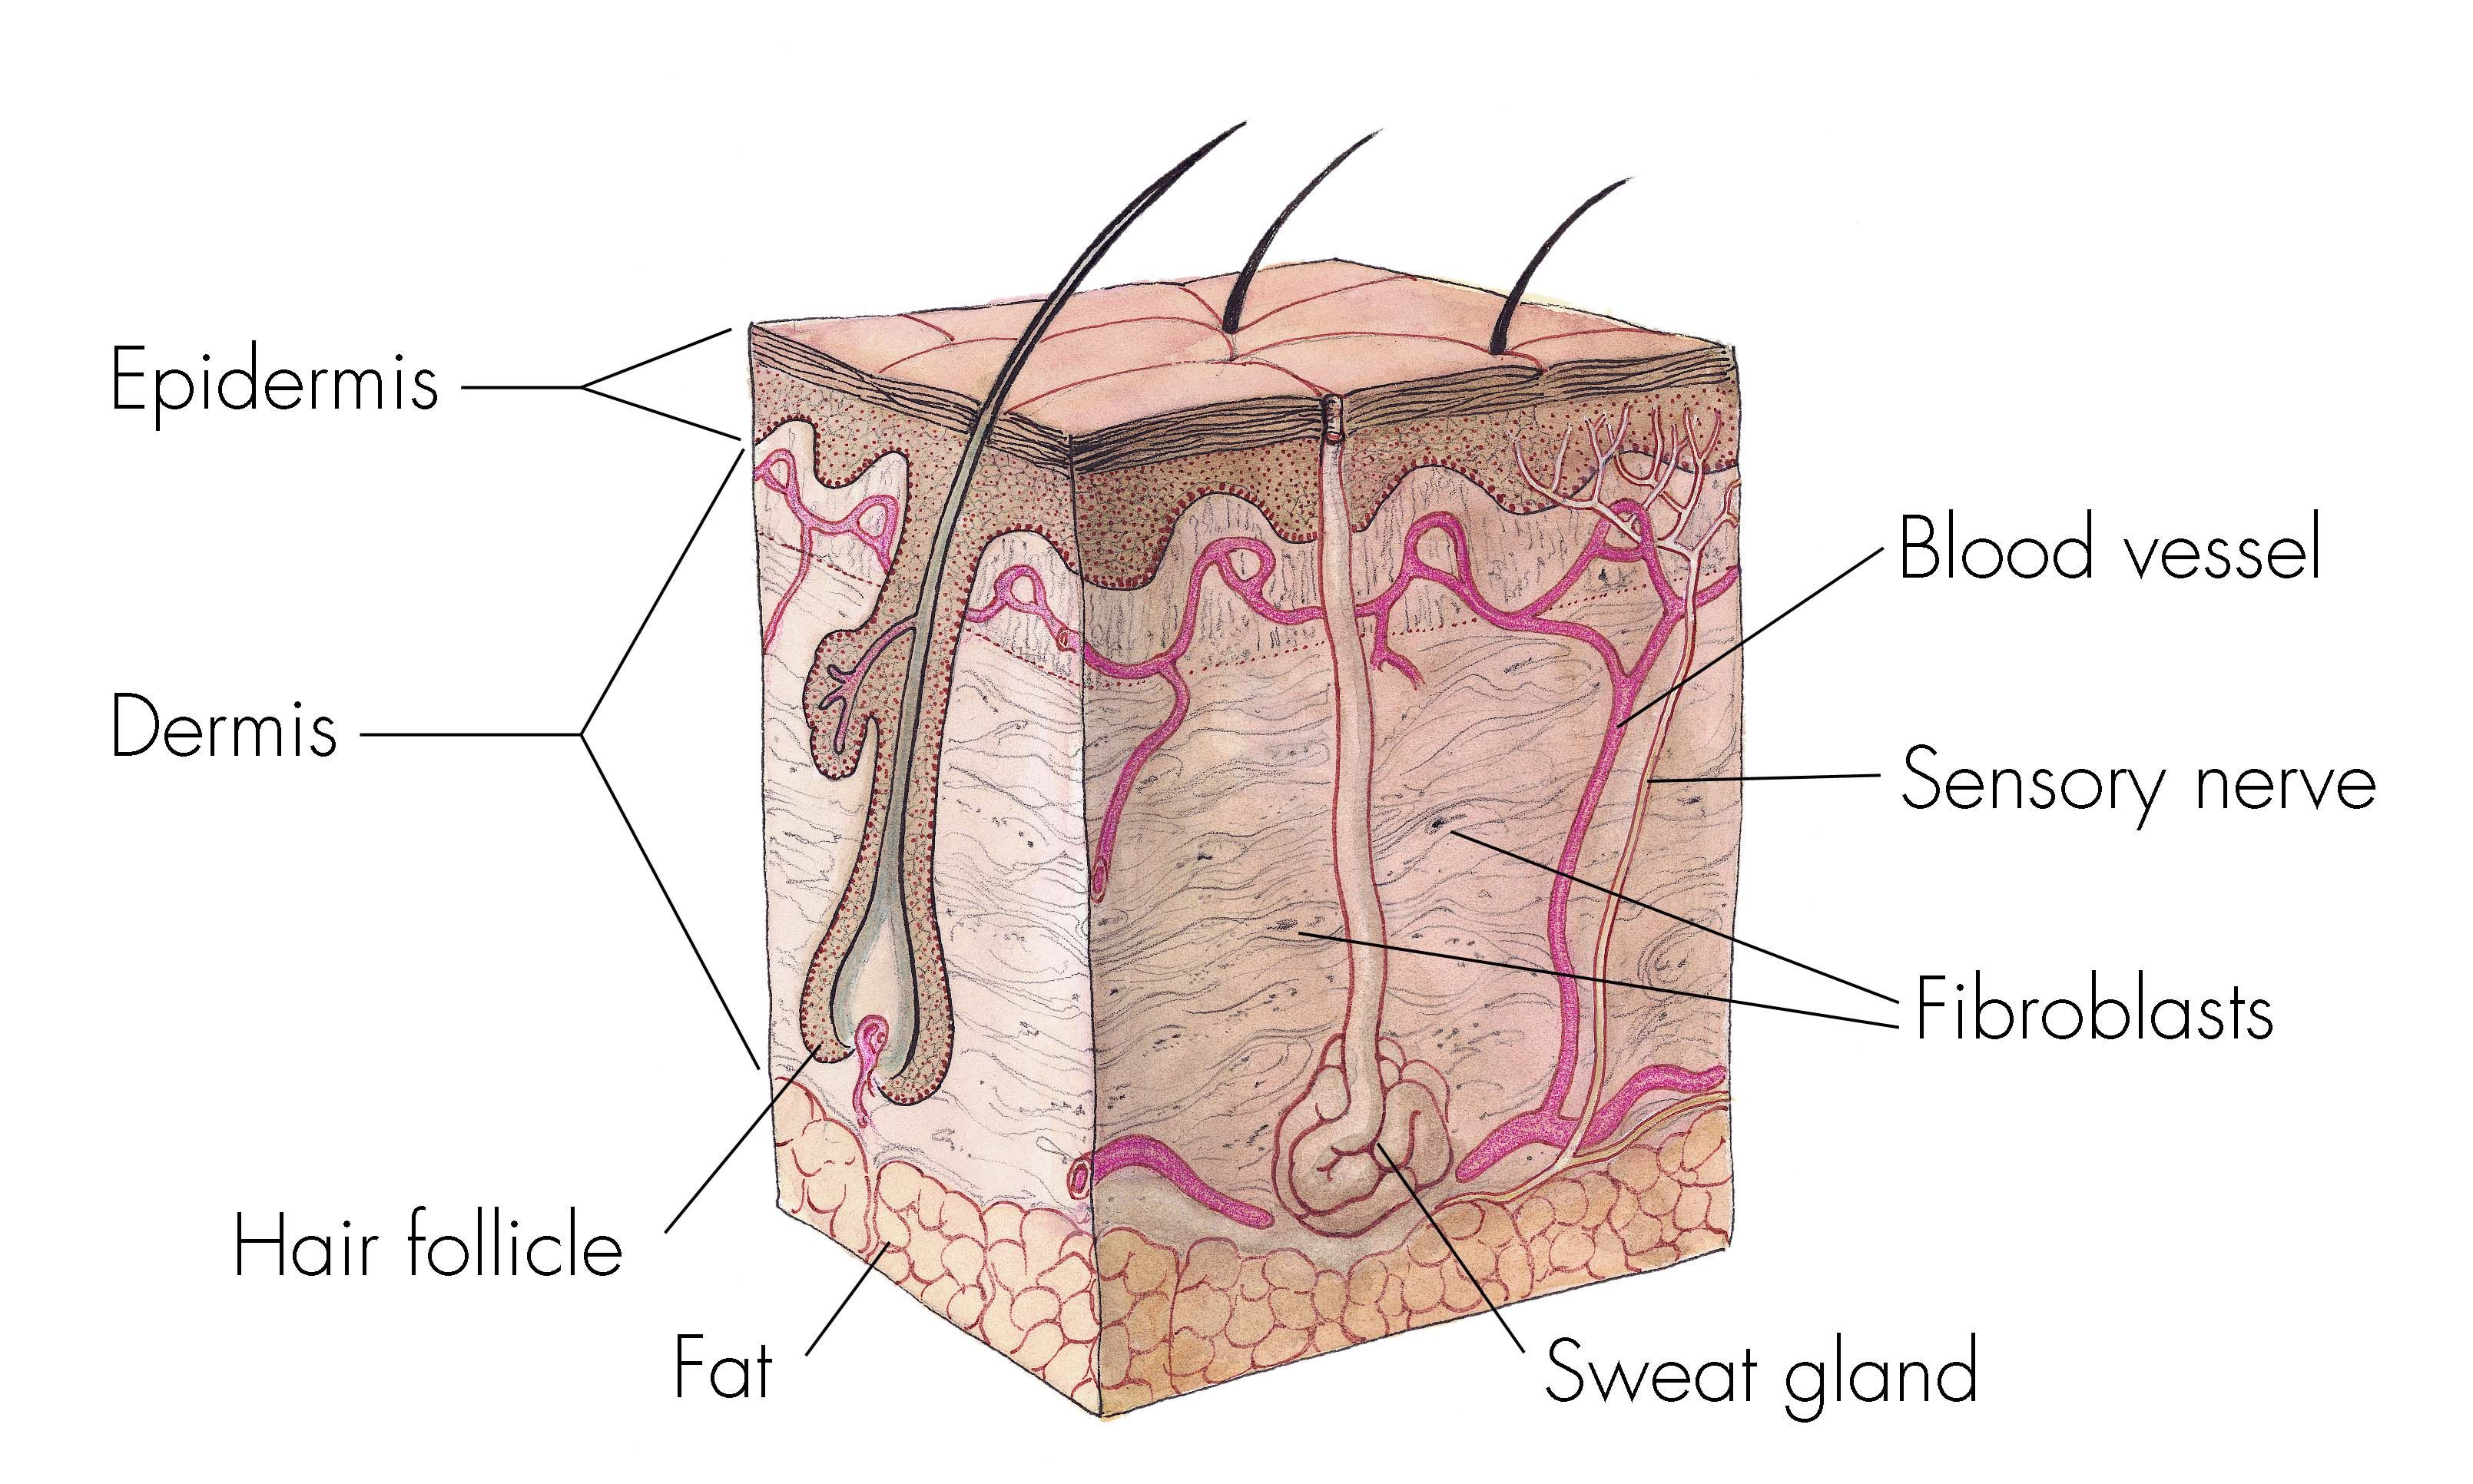 Cross Section Of Skin Anatomy Shows Layers And Different Tissue Types Credit National